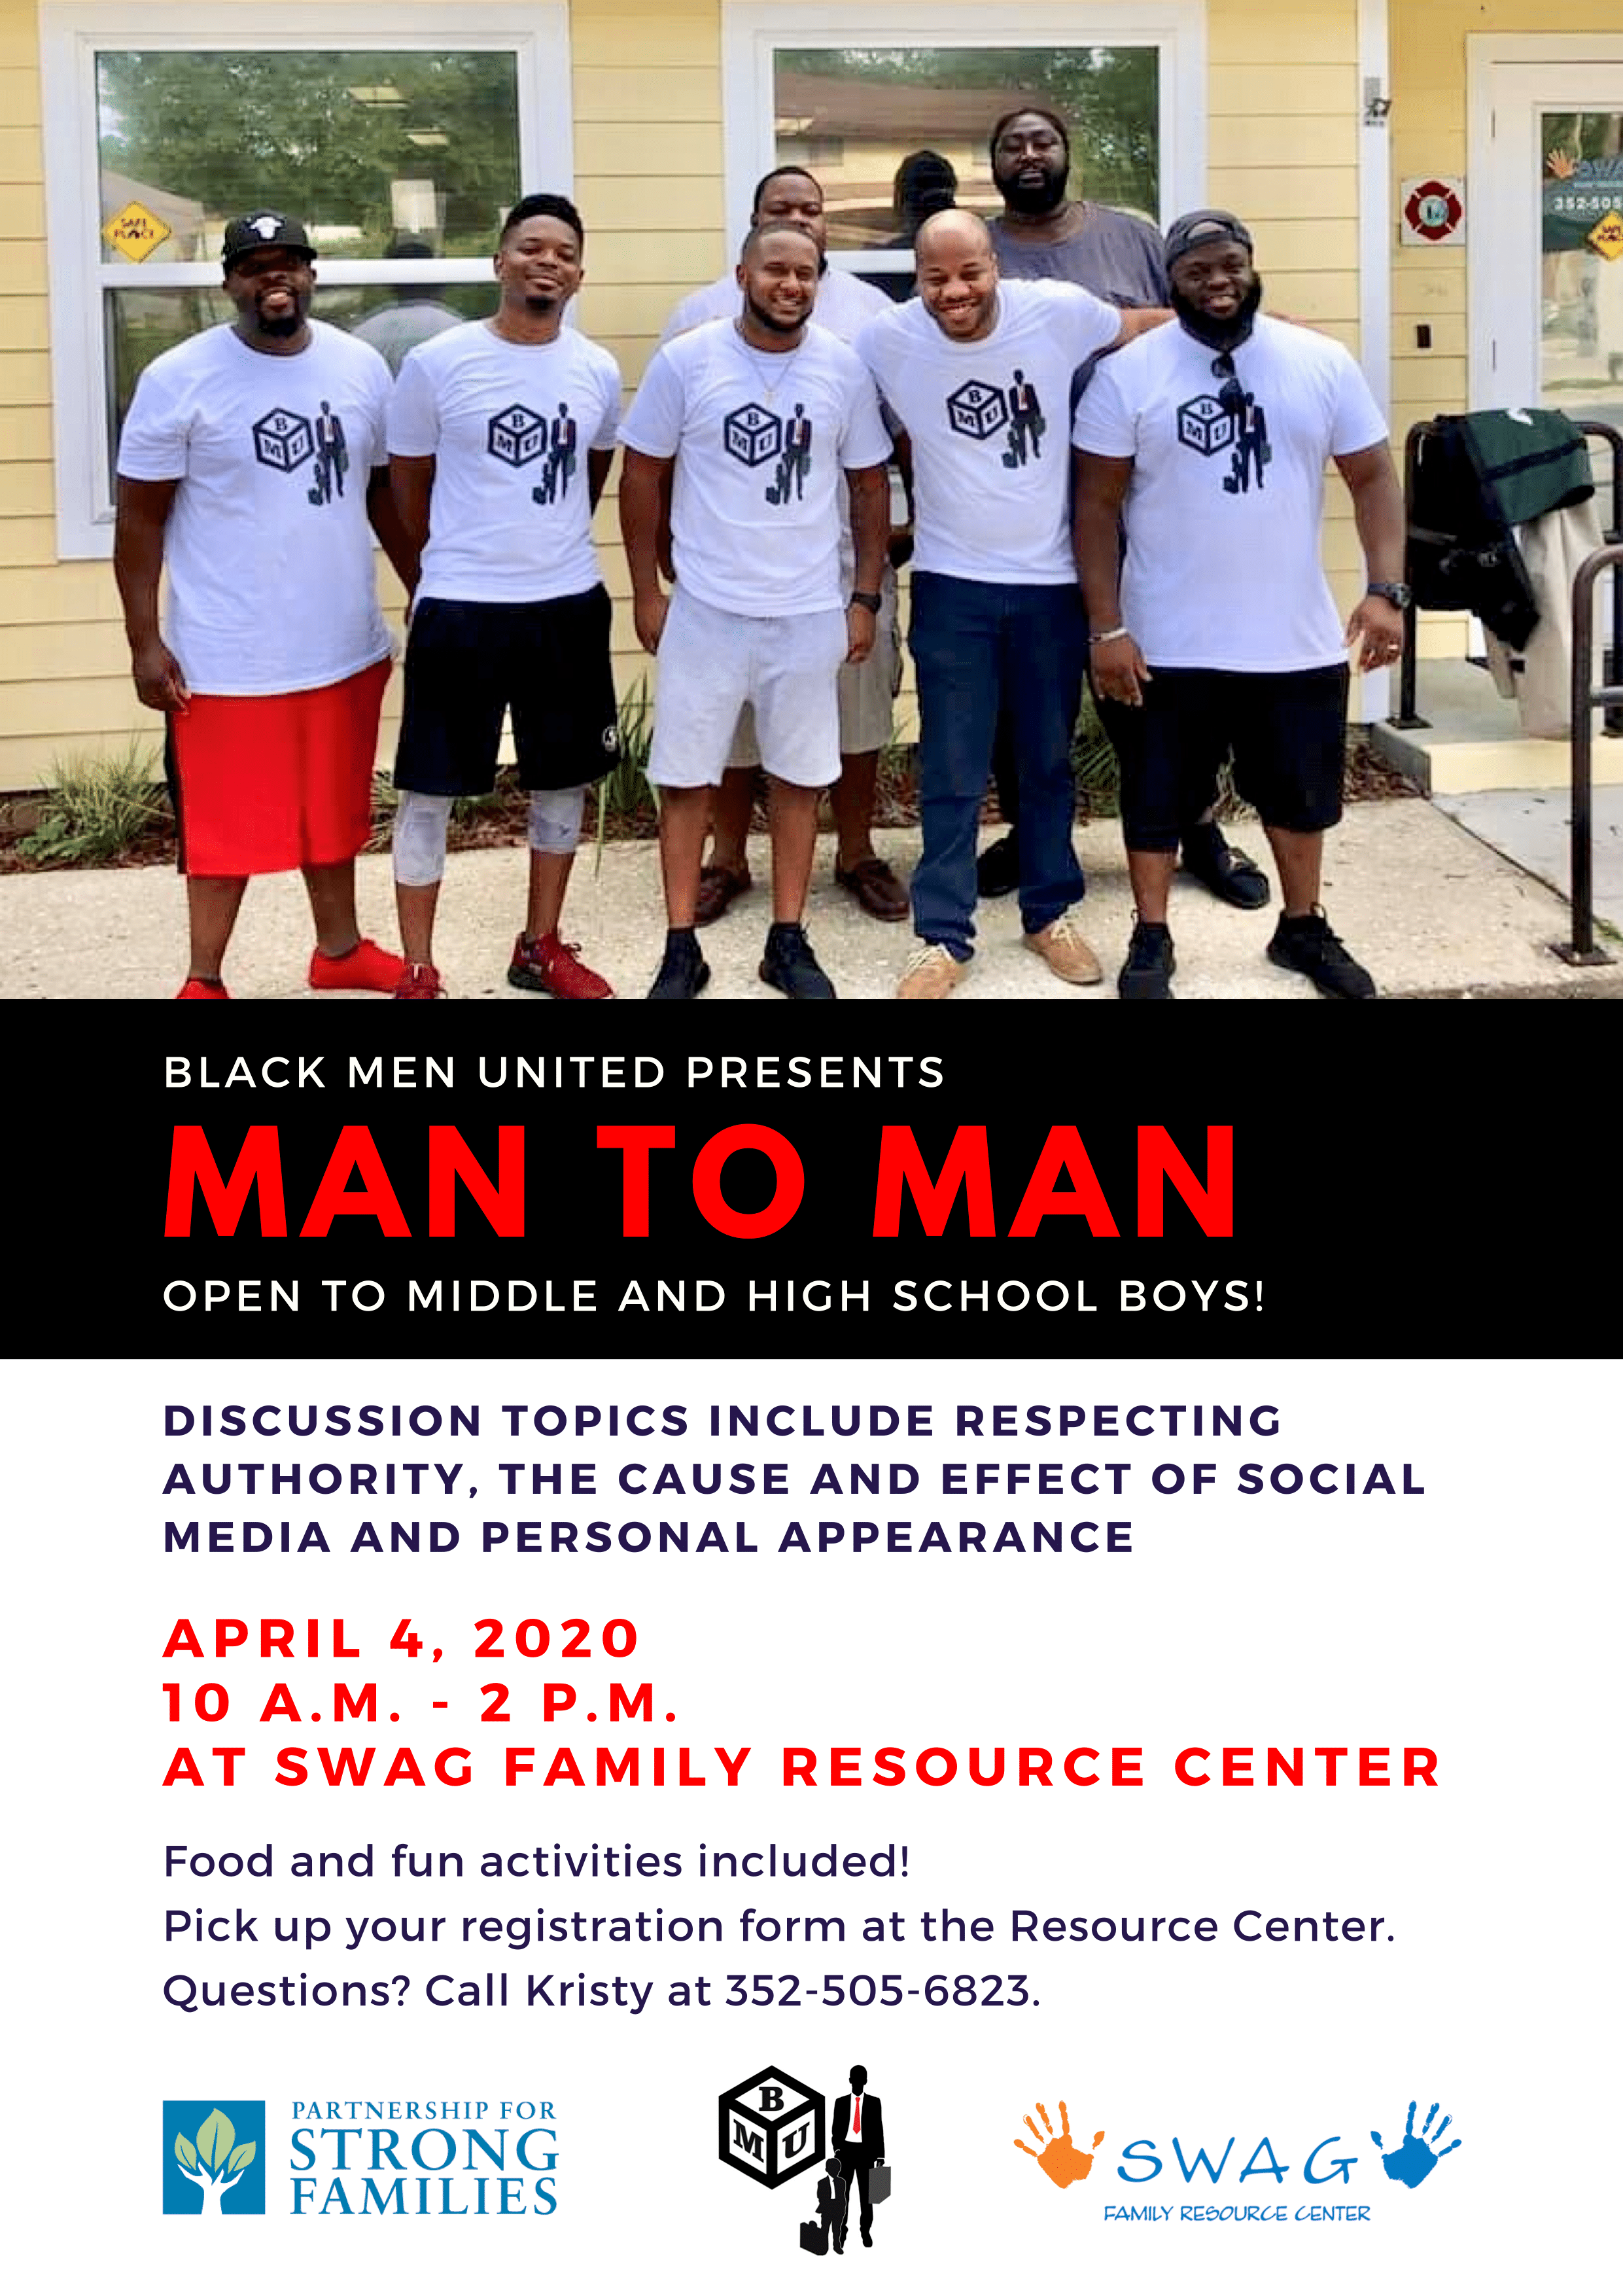 April 4: Black Men United Presents Man to Man!